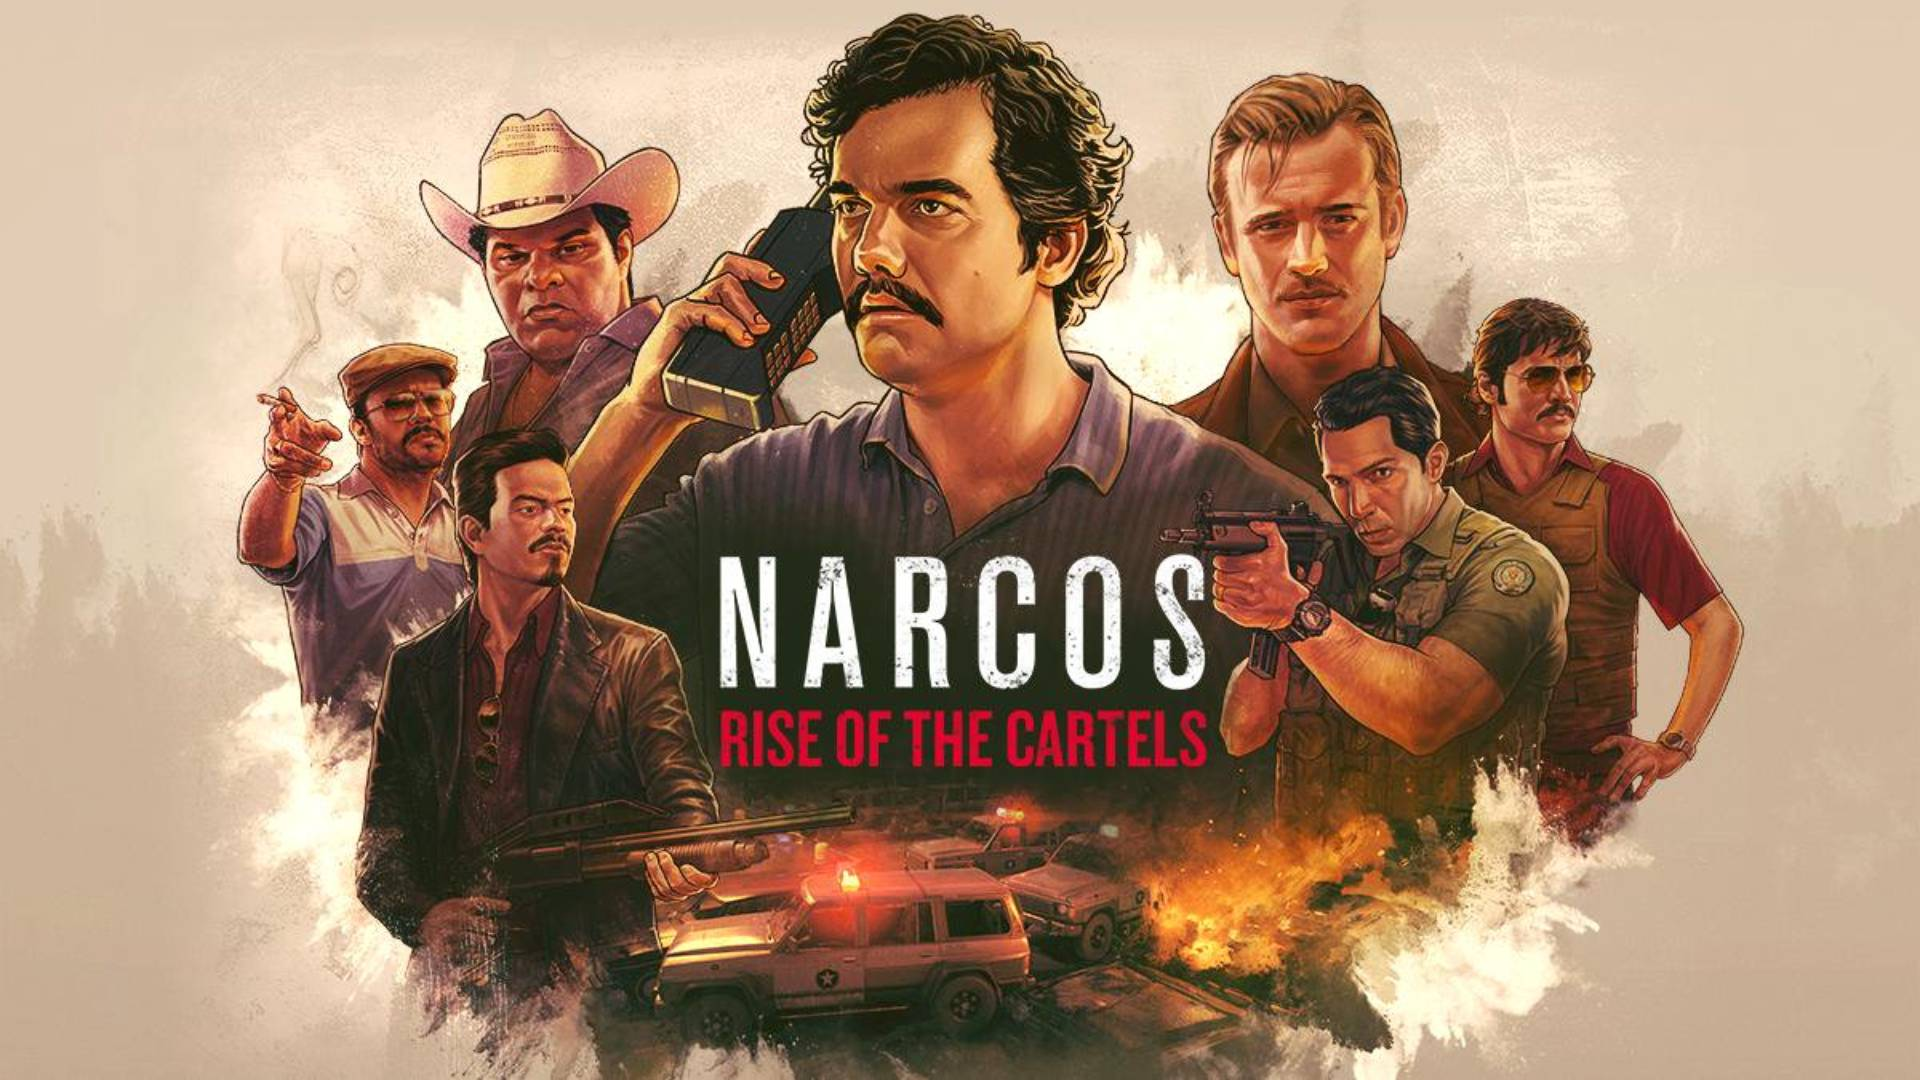 Narcos: Rise of the Cartels lanzamiento